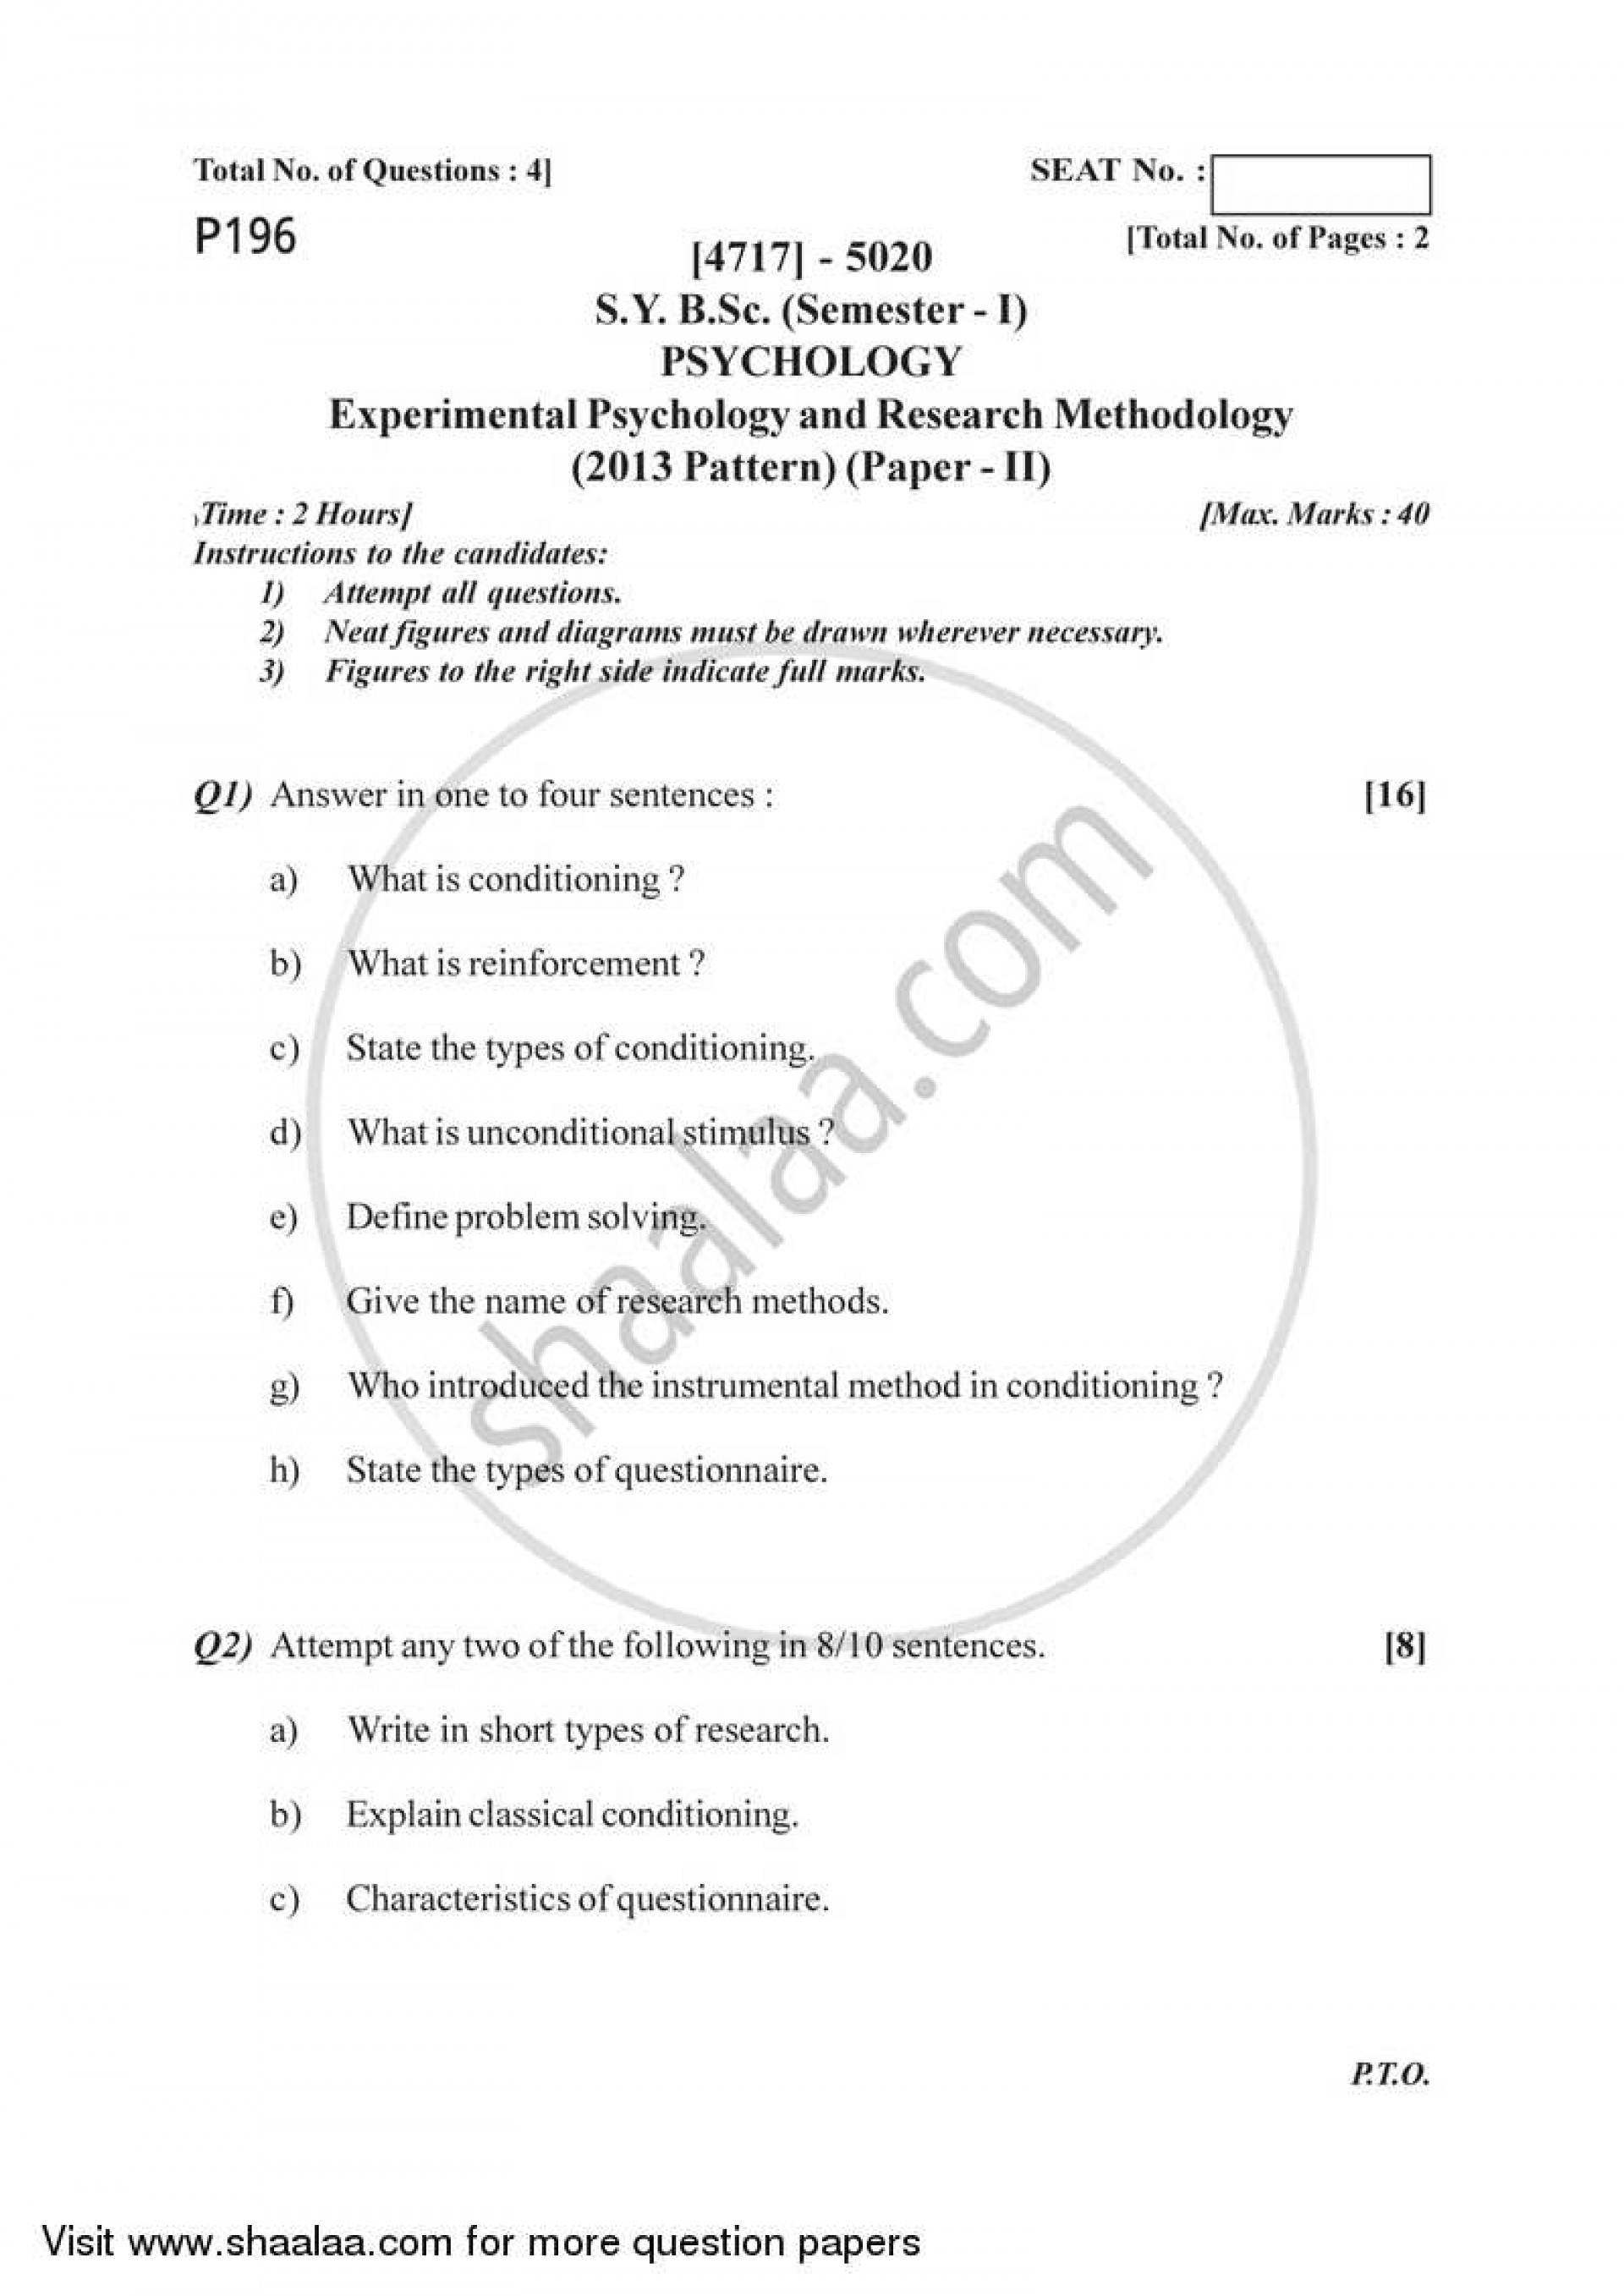 025 Research Paper University Of Pune Bachelor Bsc Experimental Psychology Methodology Semester Sybsc Pattern 2e41c64dd7a97493da58d01b3ff66032b Dreaded For Topics Class Examples Sample On Developmental 1920